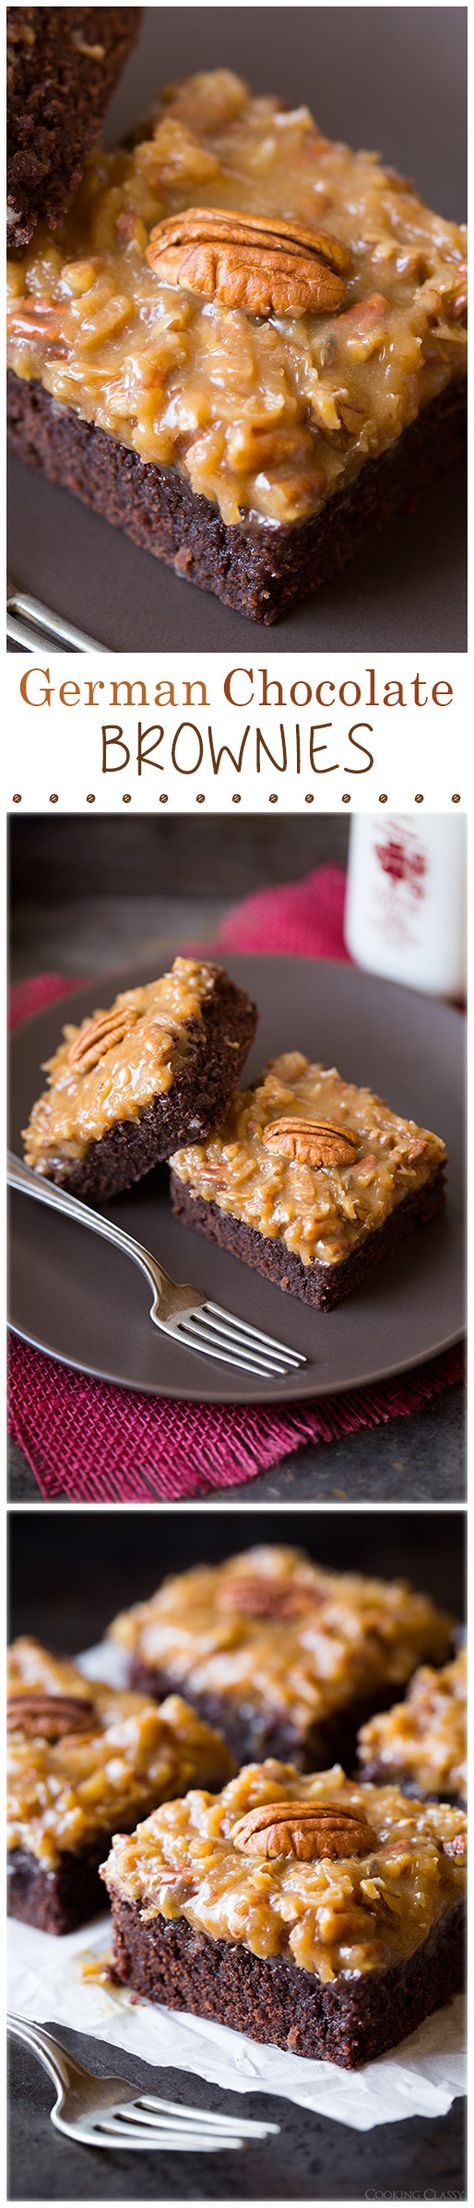 German Chocolate Brownies - they're even better than the cake, they're just totally irresistible!